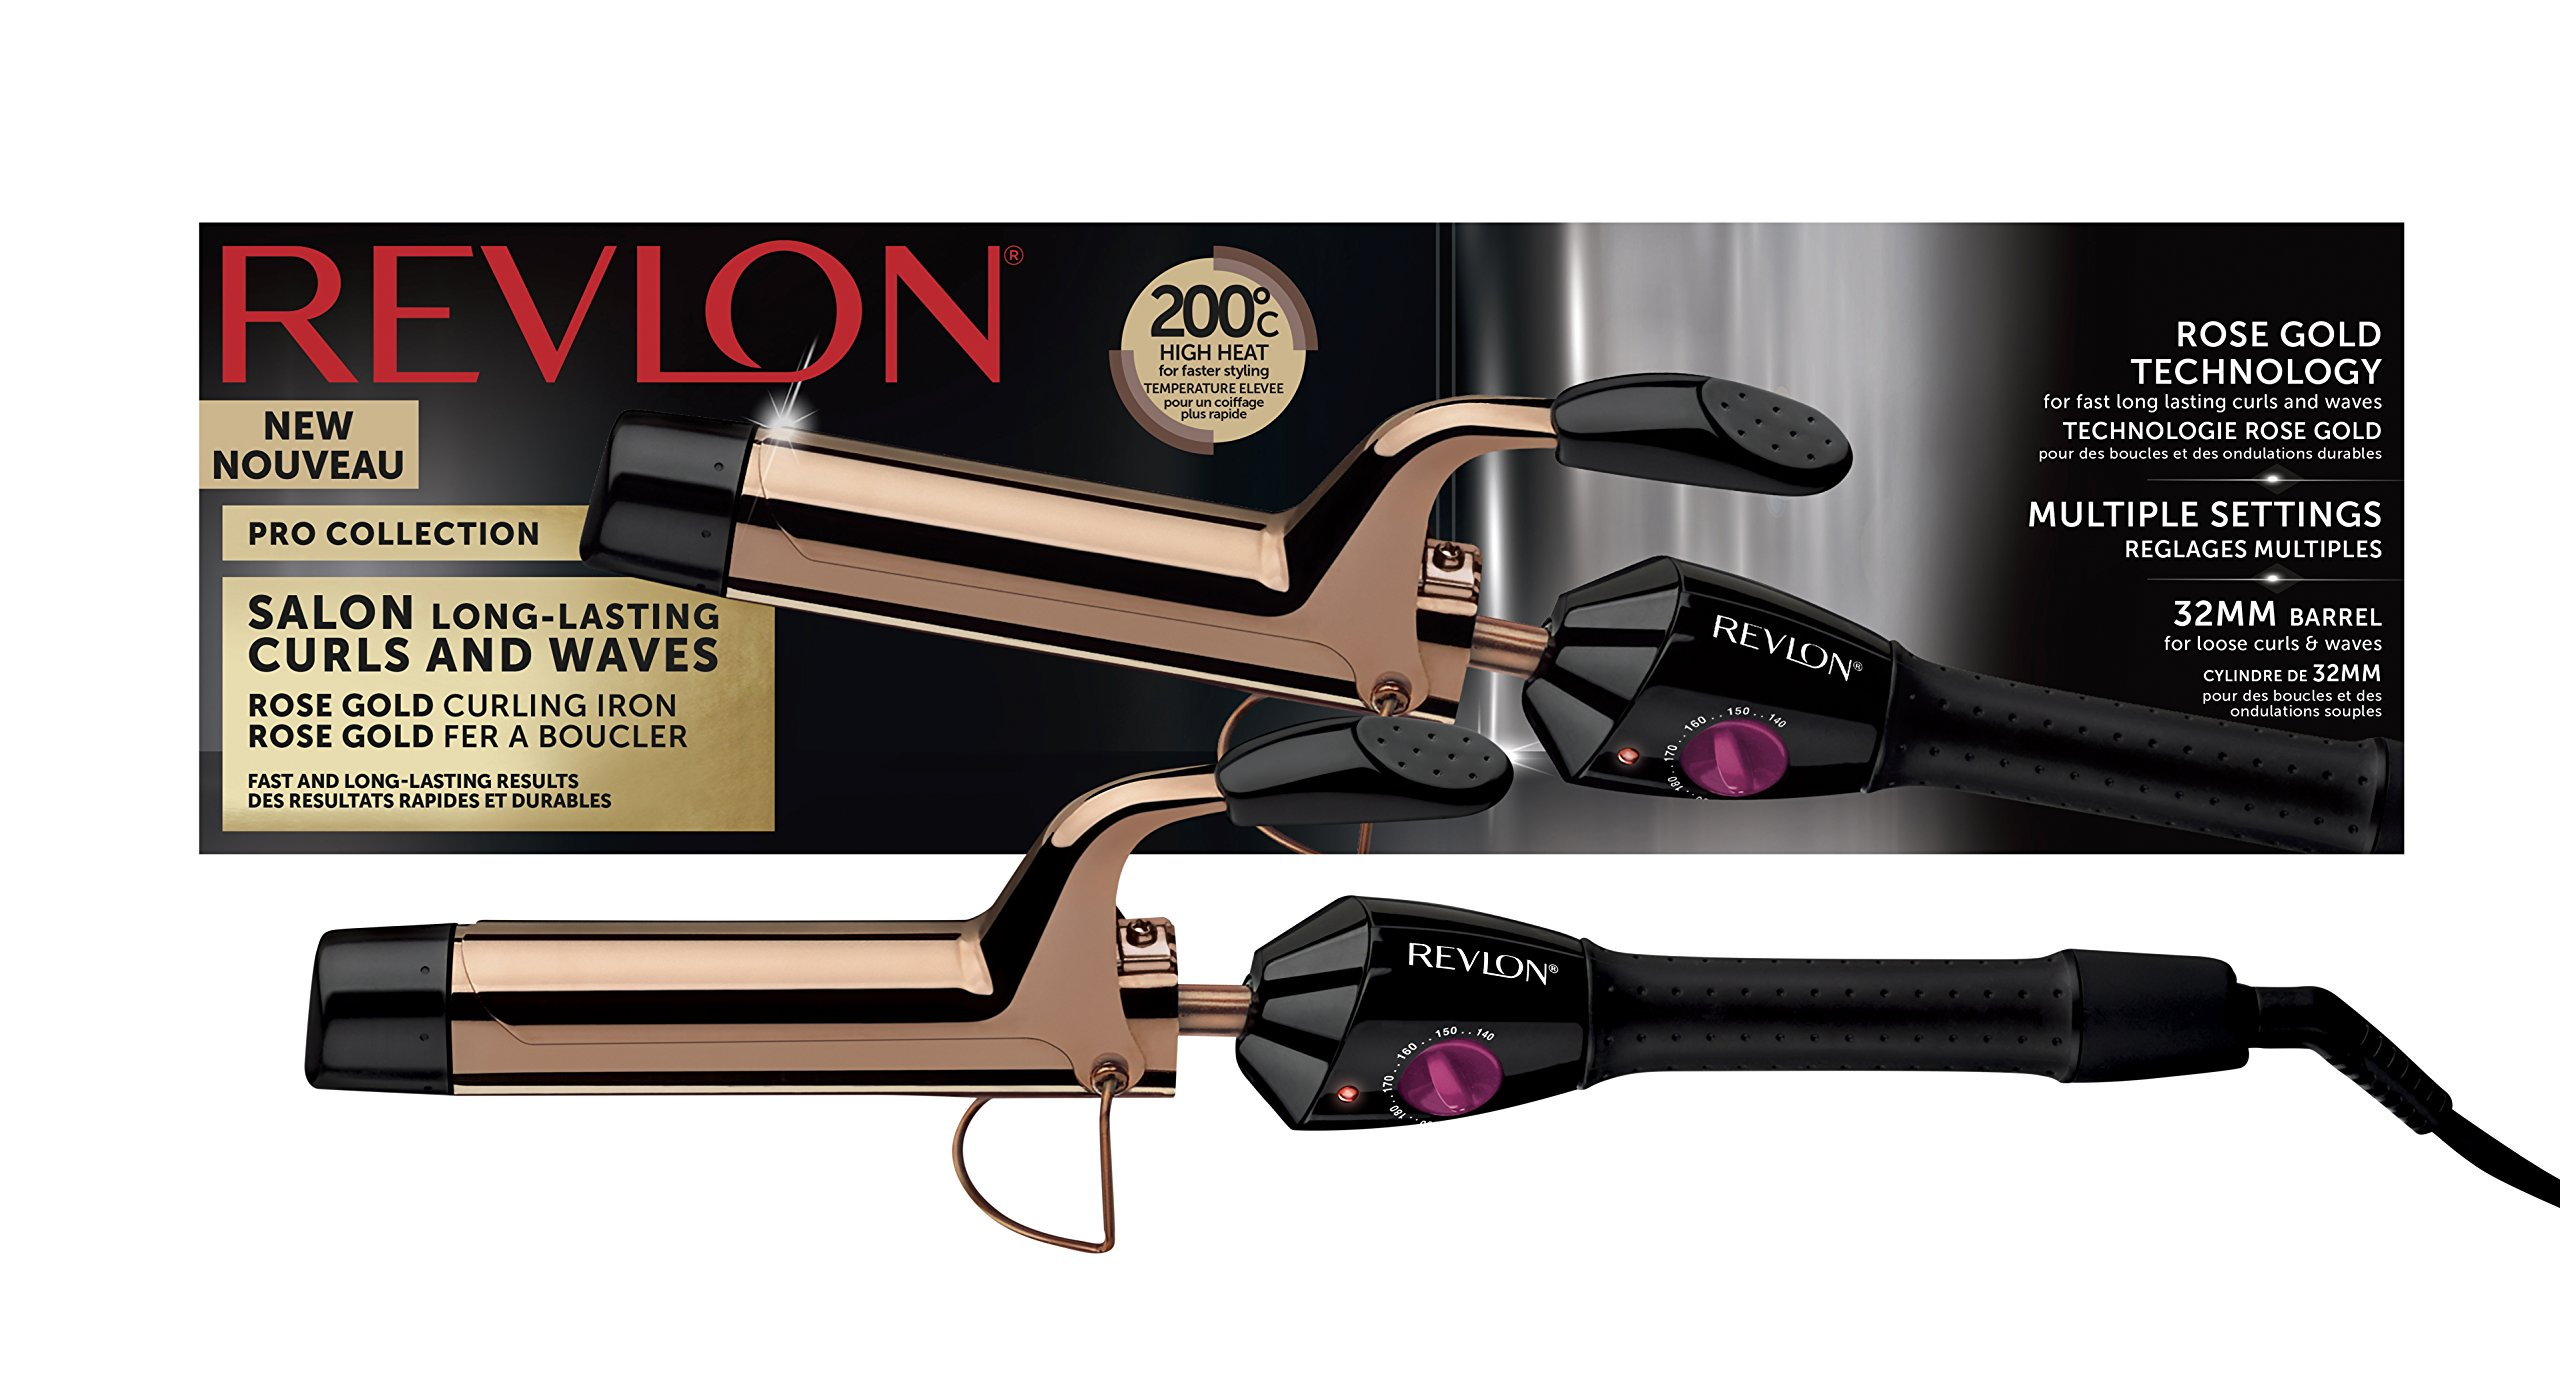 REVLON Pro Collection Salon Long-Last Curls and Waves Styler - RVIR1159